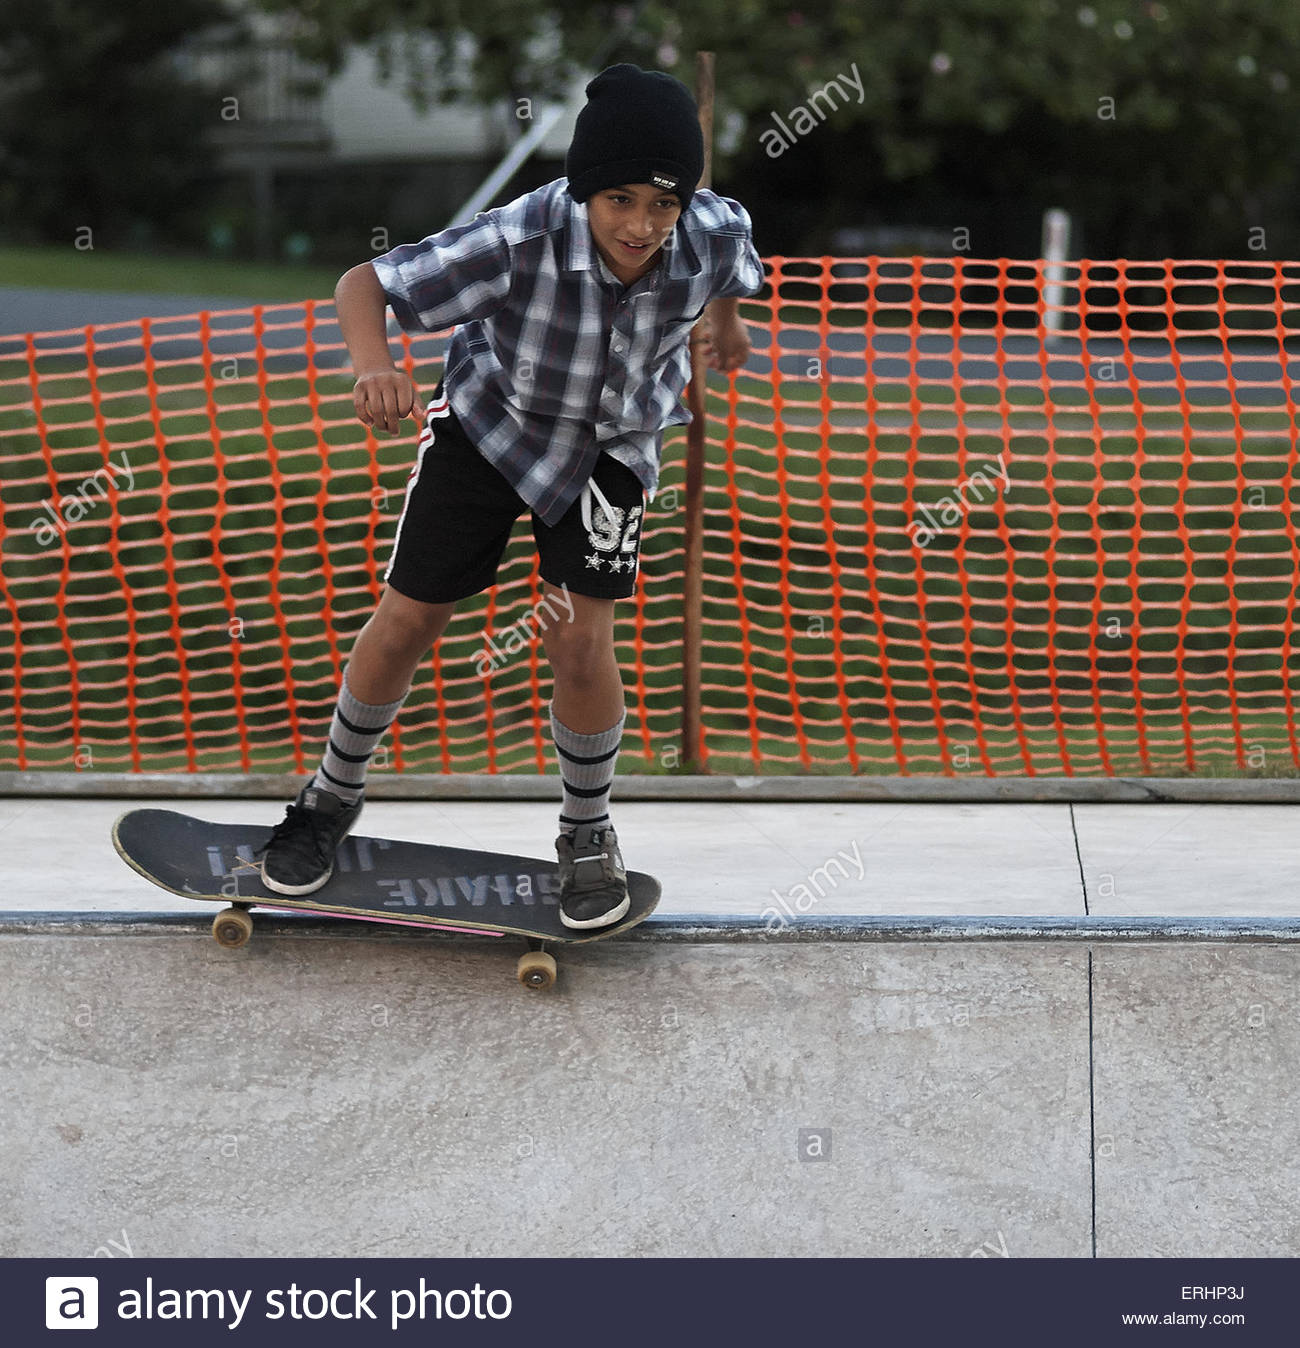 A young Jewish / Israeli boy, skateboarding along the metal lip or coping in the concrete bowl, at the skatepark - Stock Image